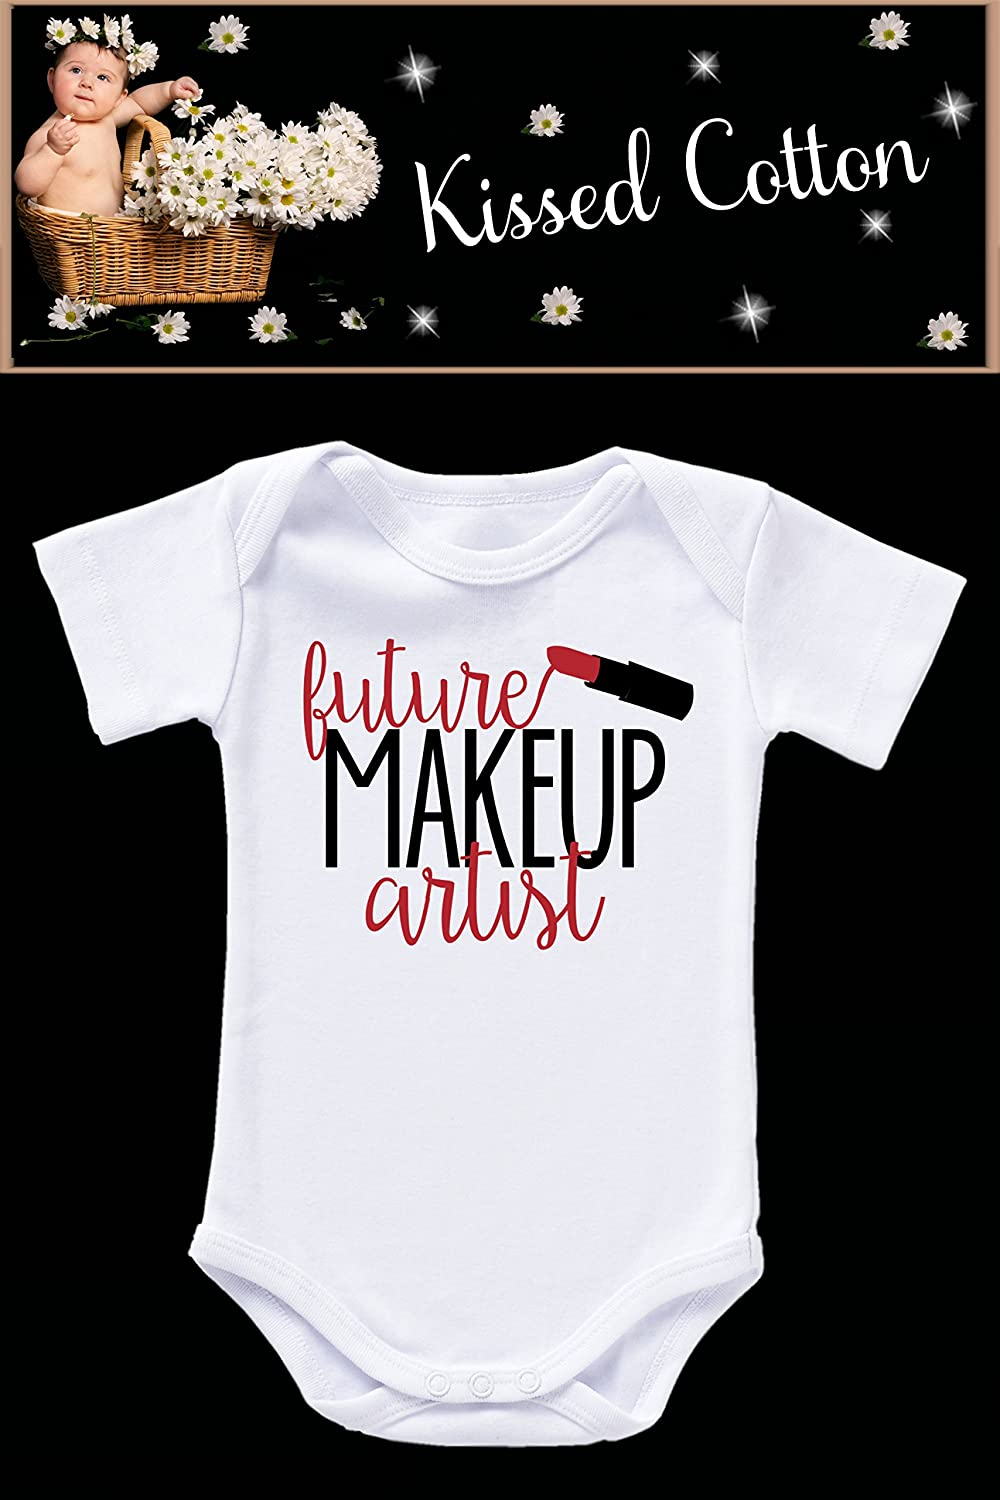 Future Makeup Artist baby onesie (KC92)